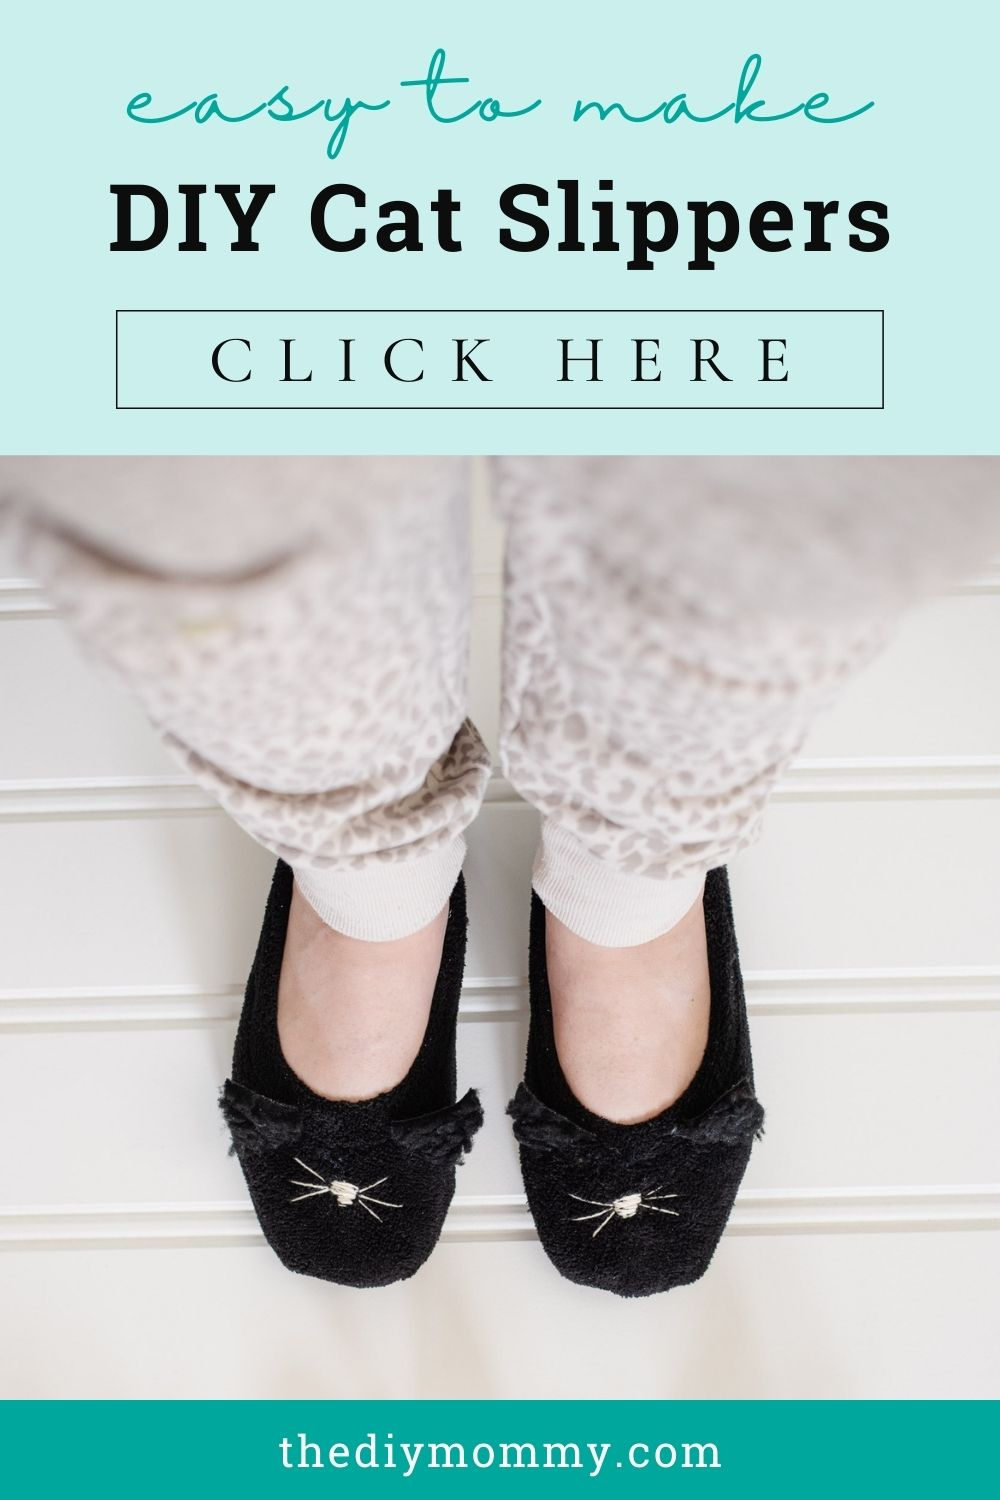 Learn how to make these cute DIY cat slippers from $3 Walmart slippers. So easy to make and an adorable gift!